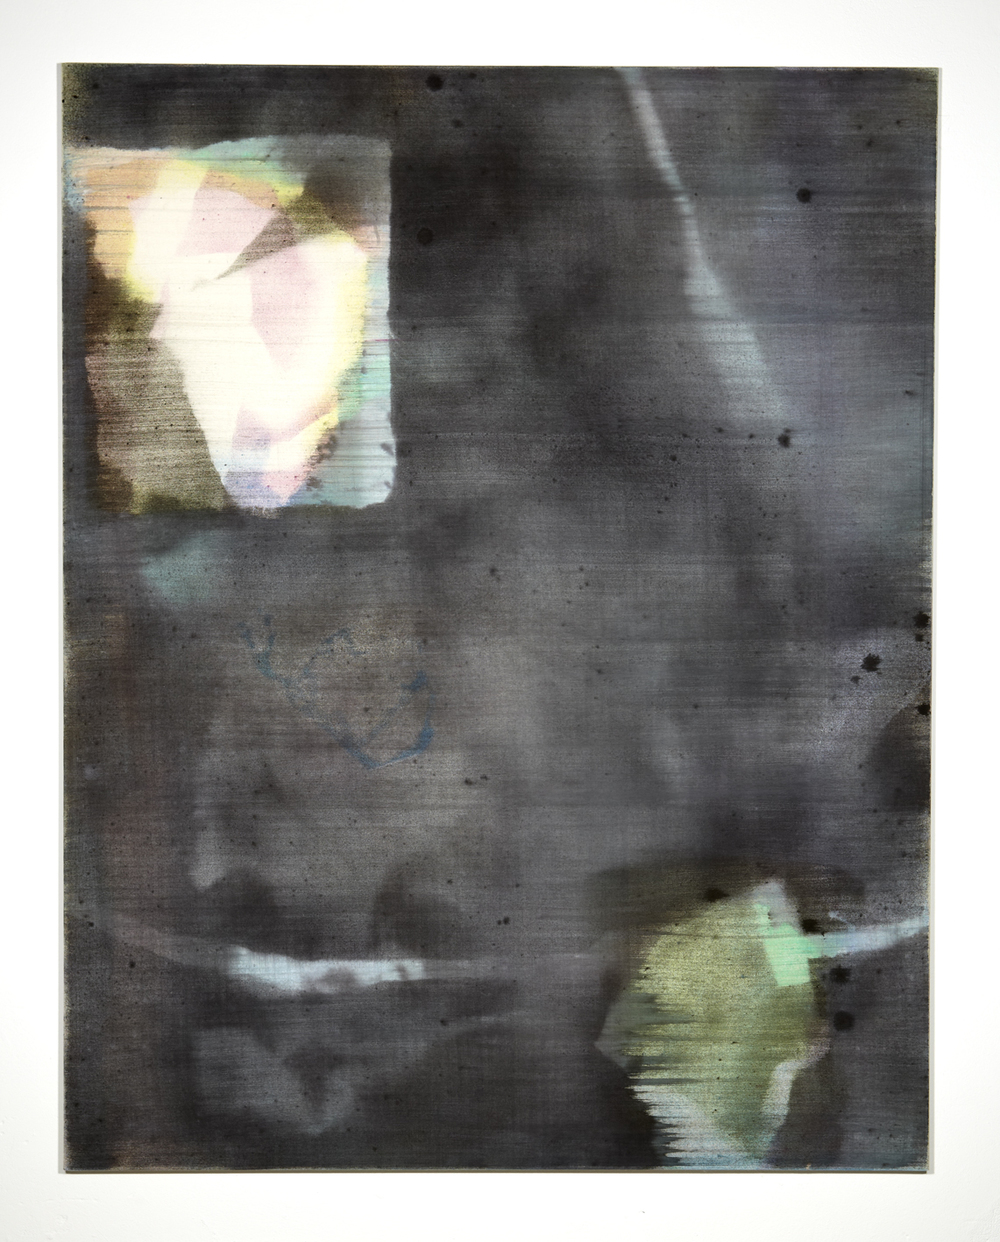 Martin Aagaard Hansen. Untitled, 2014, water colour and ink on linen, 190 cm x 149 cm